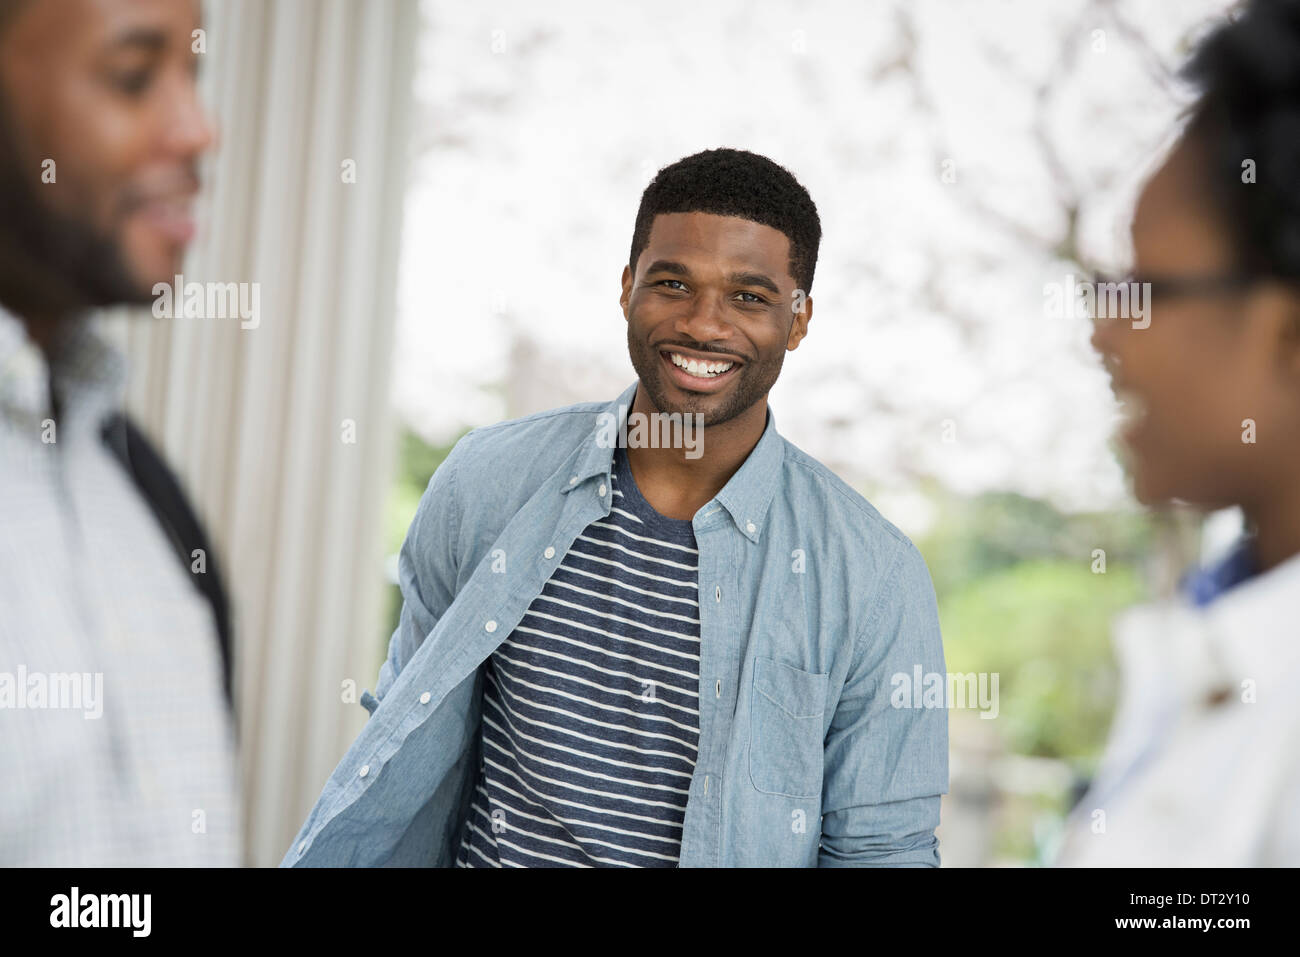 A man looking at the camera with two people in the foreground - Stock Image